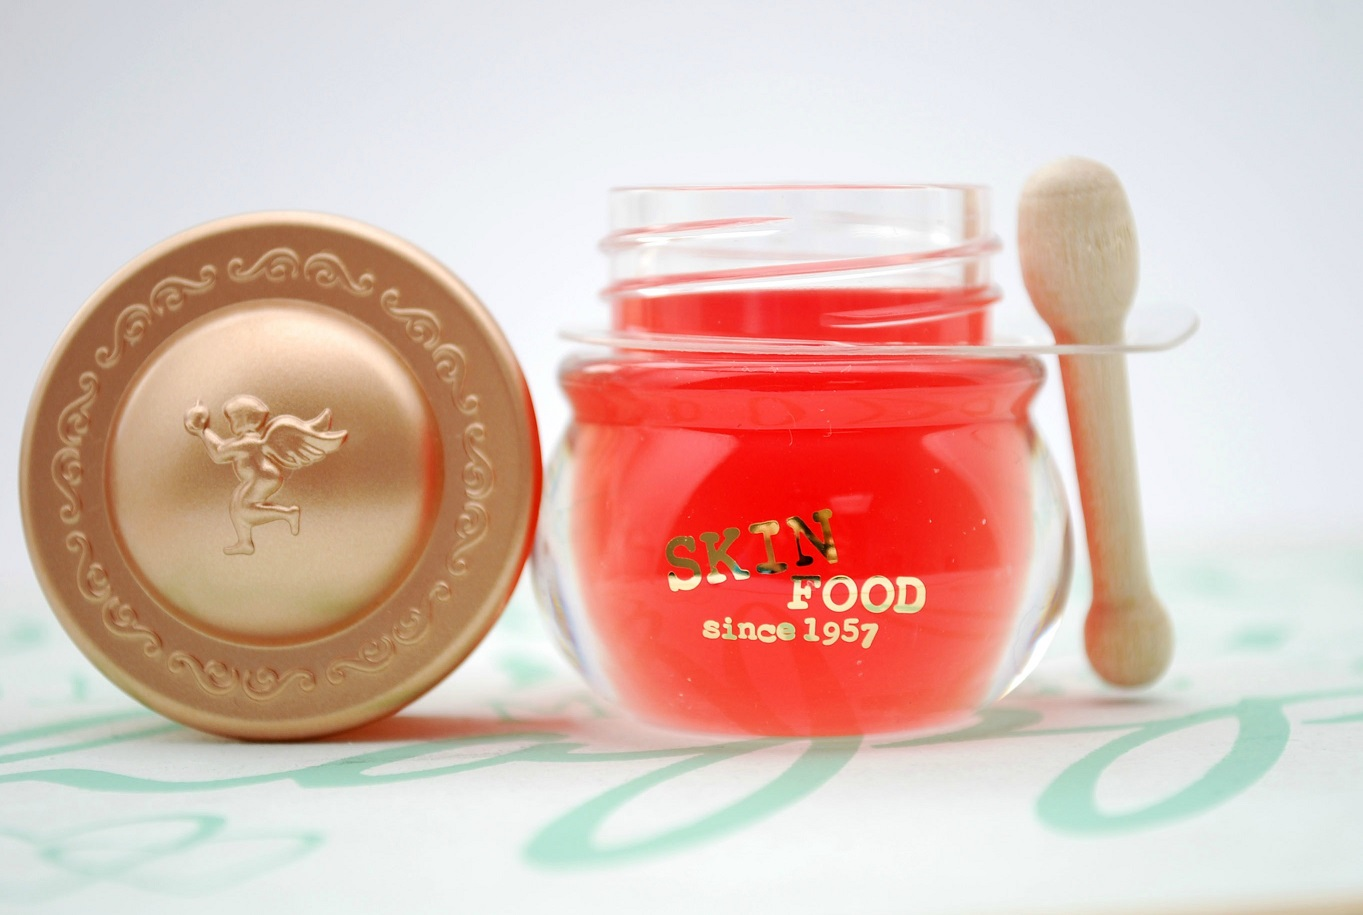 Skinfood Honey Pot Lip Balm #1 Berry